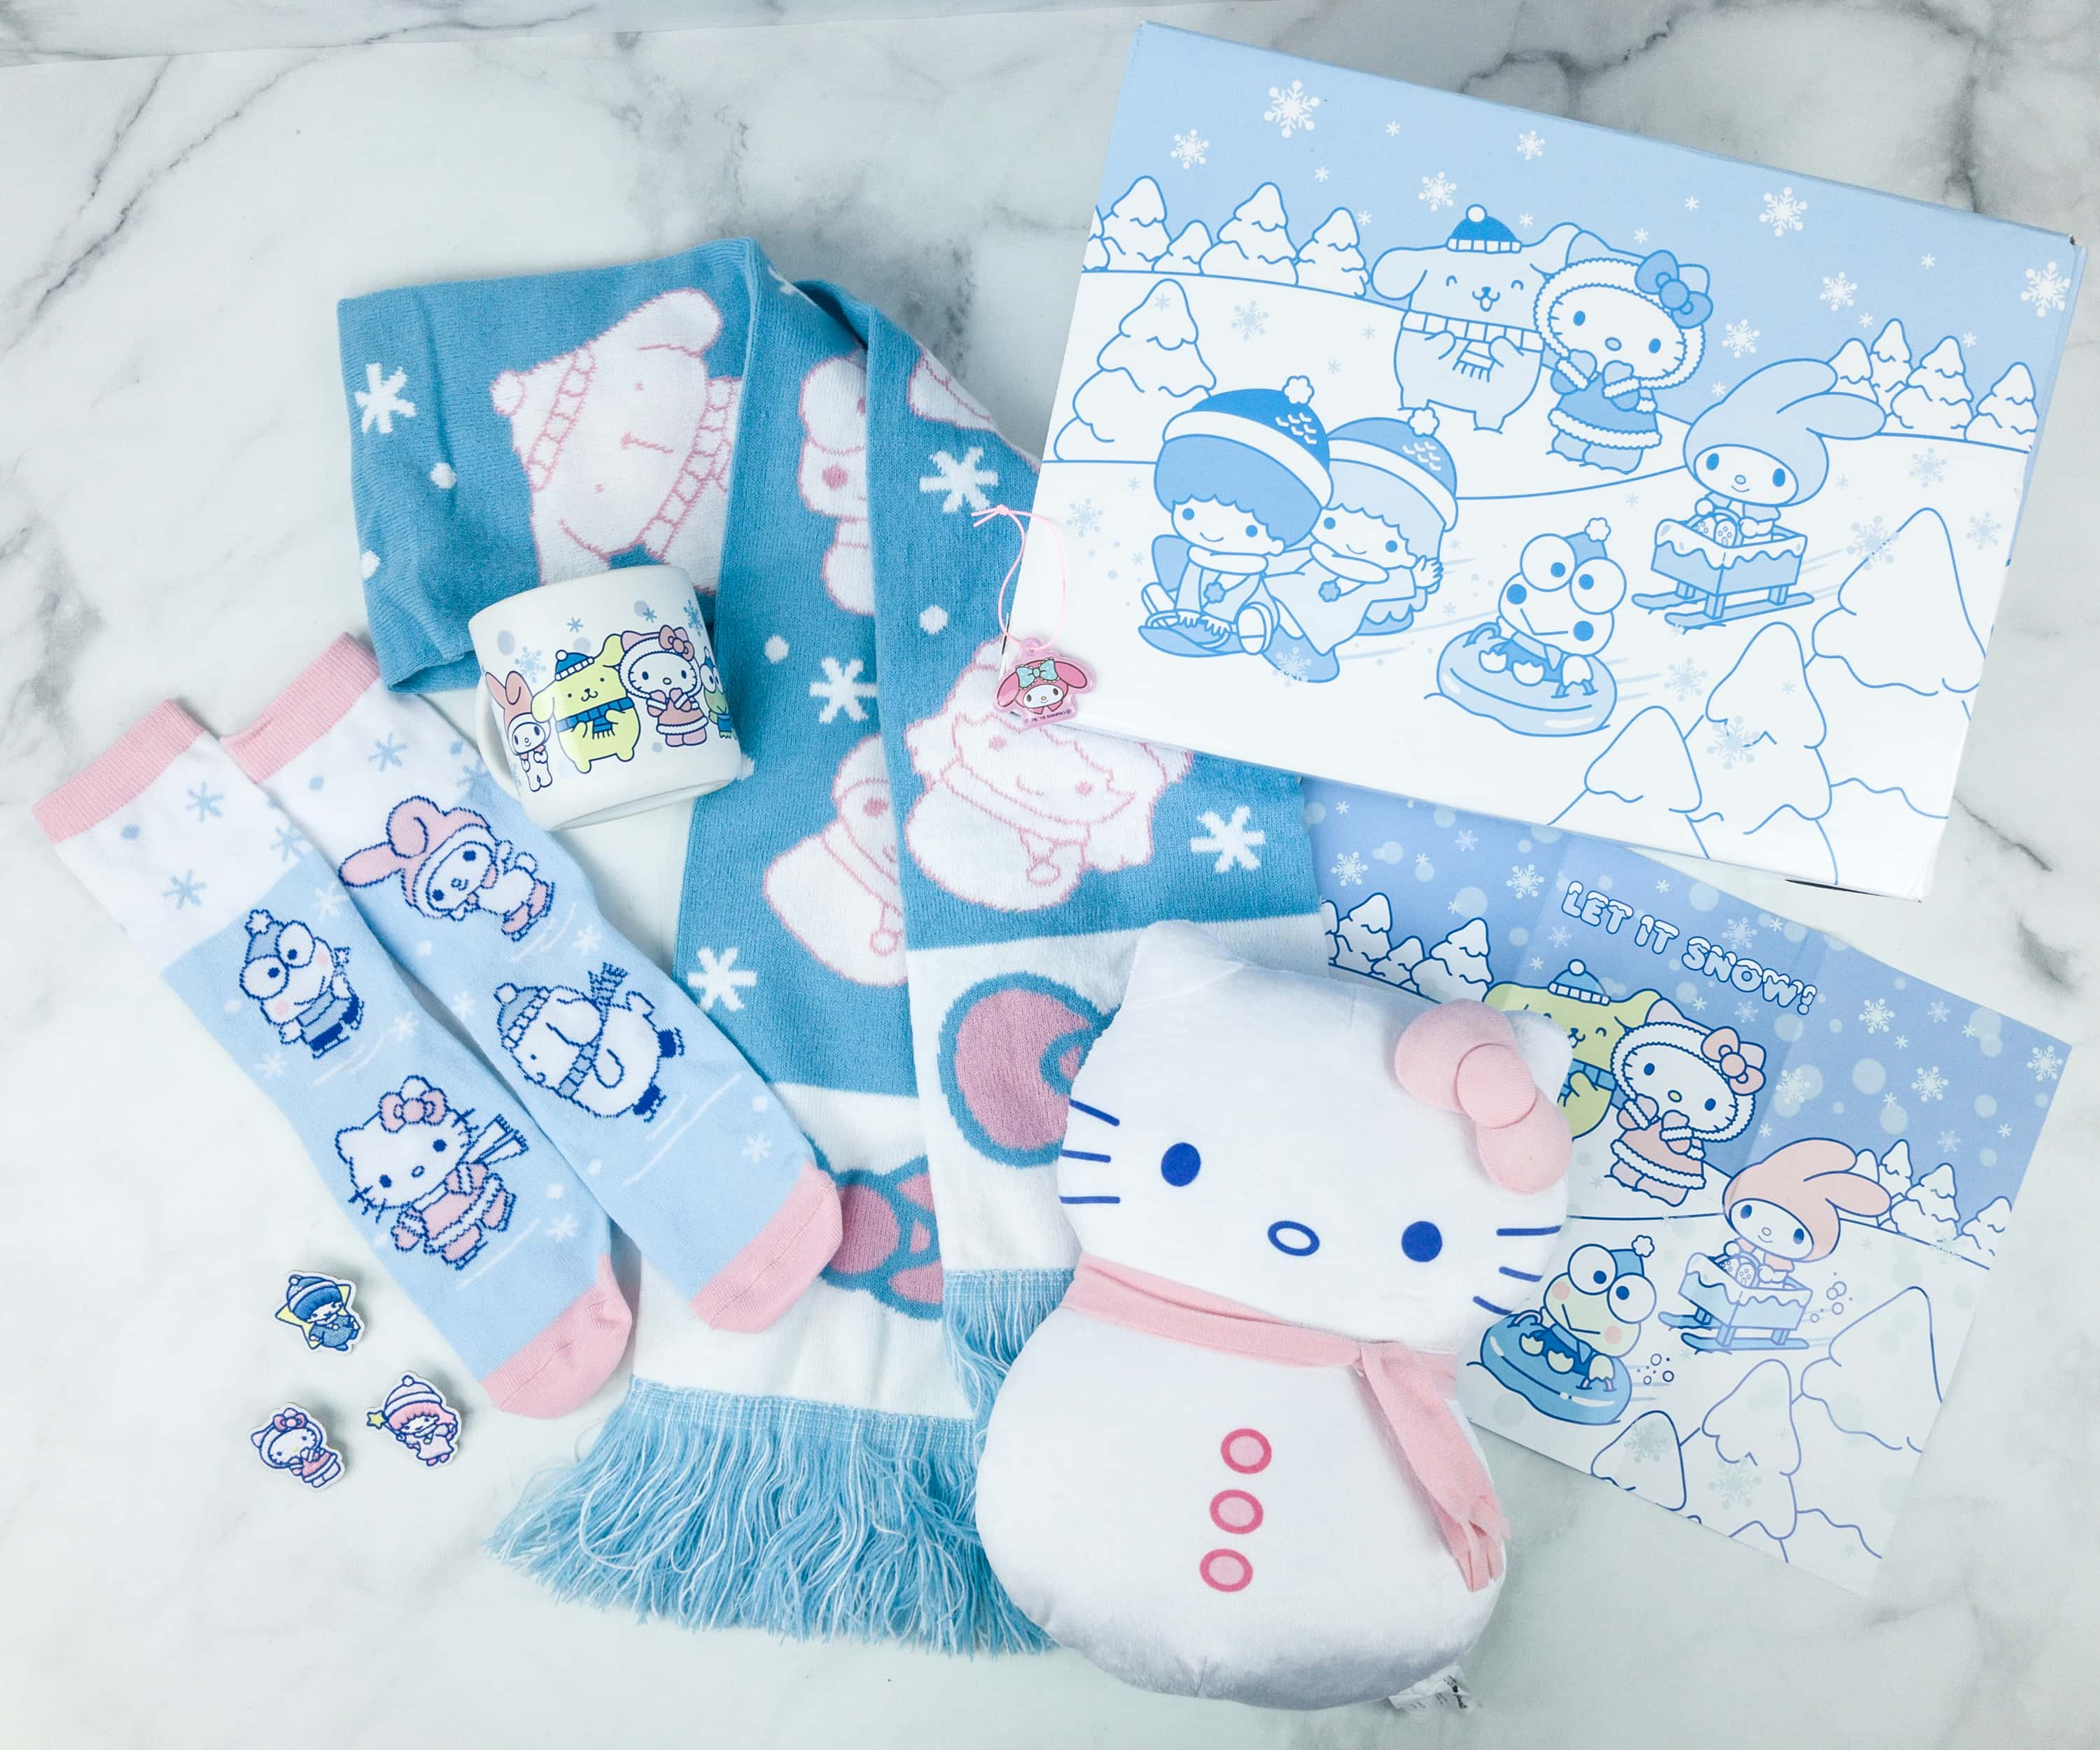 Sanrio Small Gift Crate Winter 2018 Subscription Box Review + Coupon!